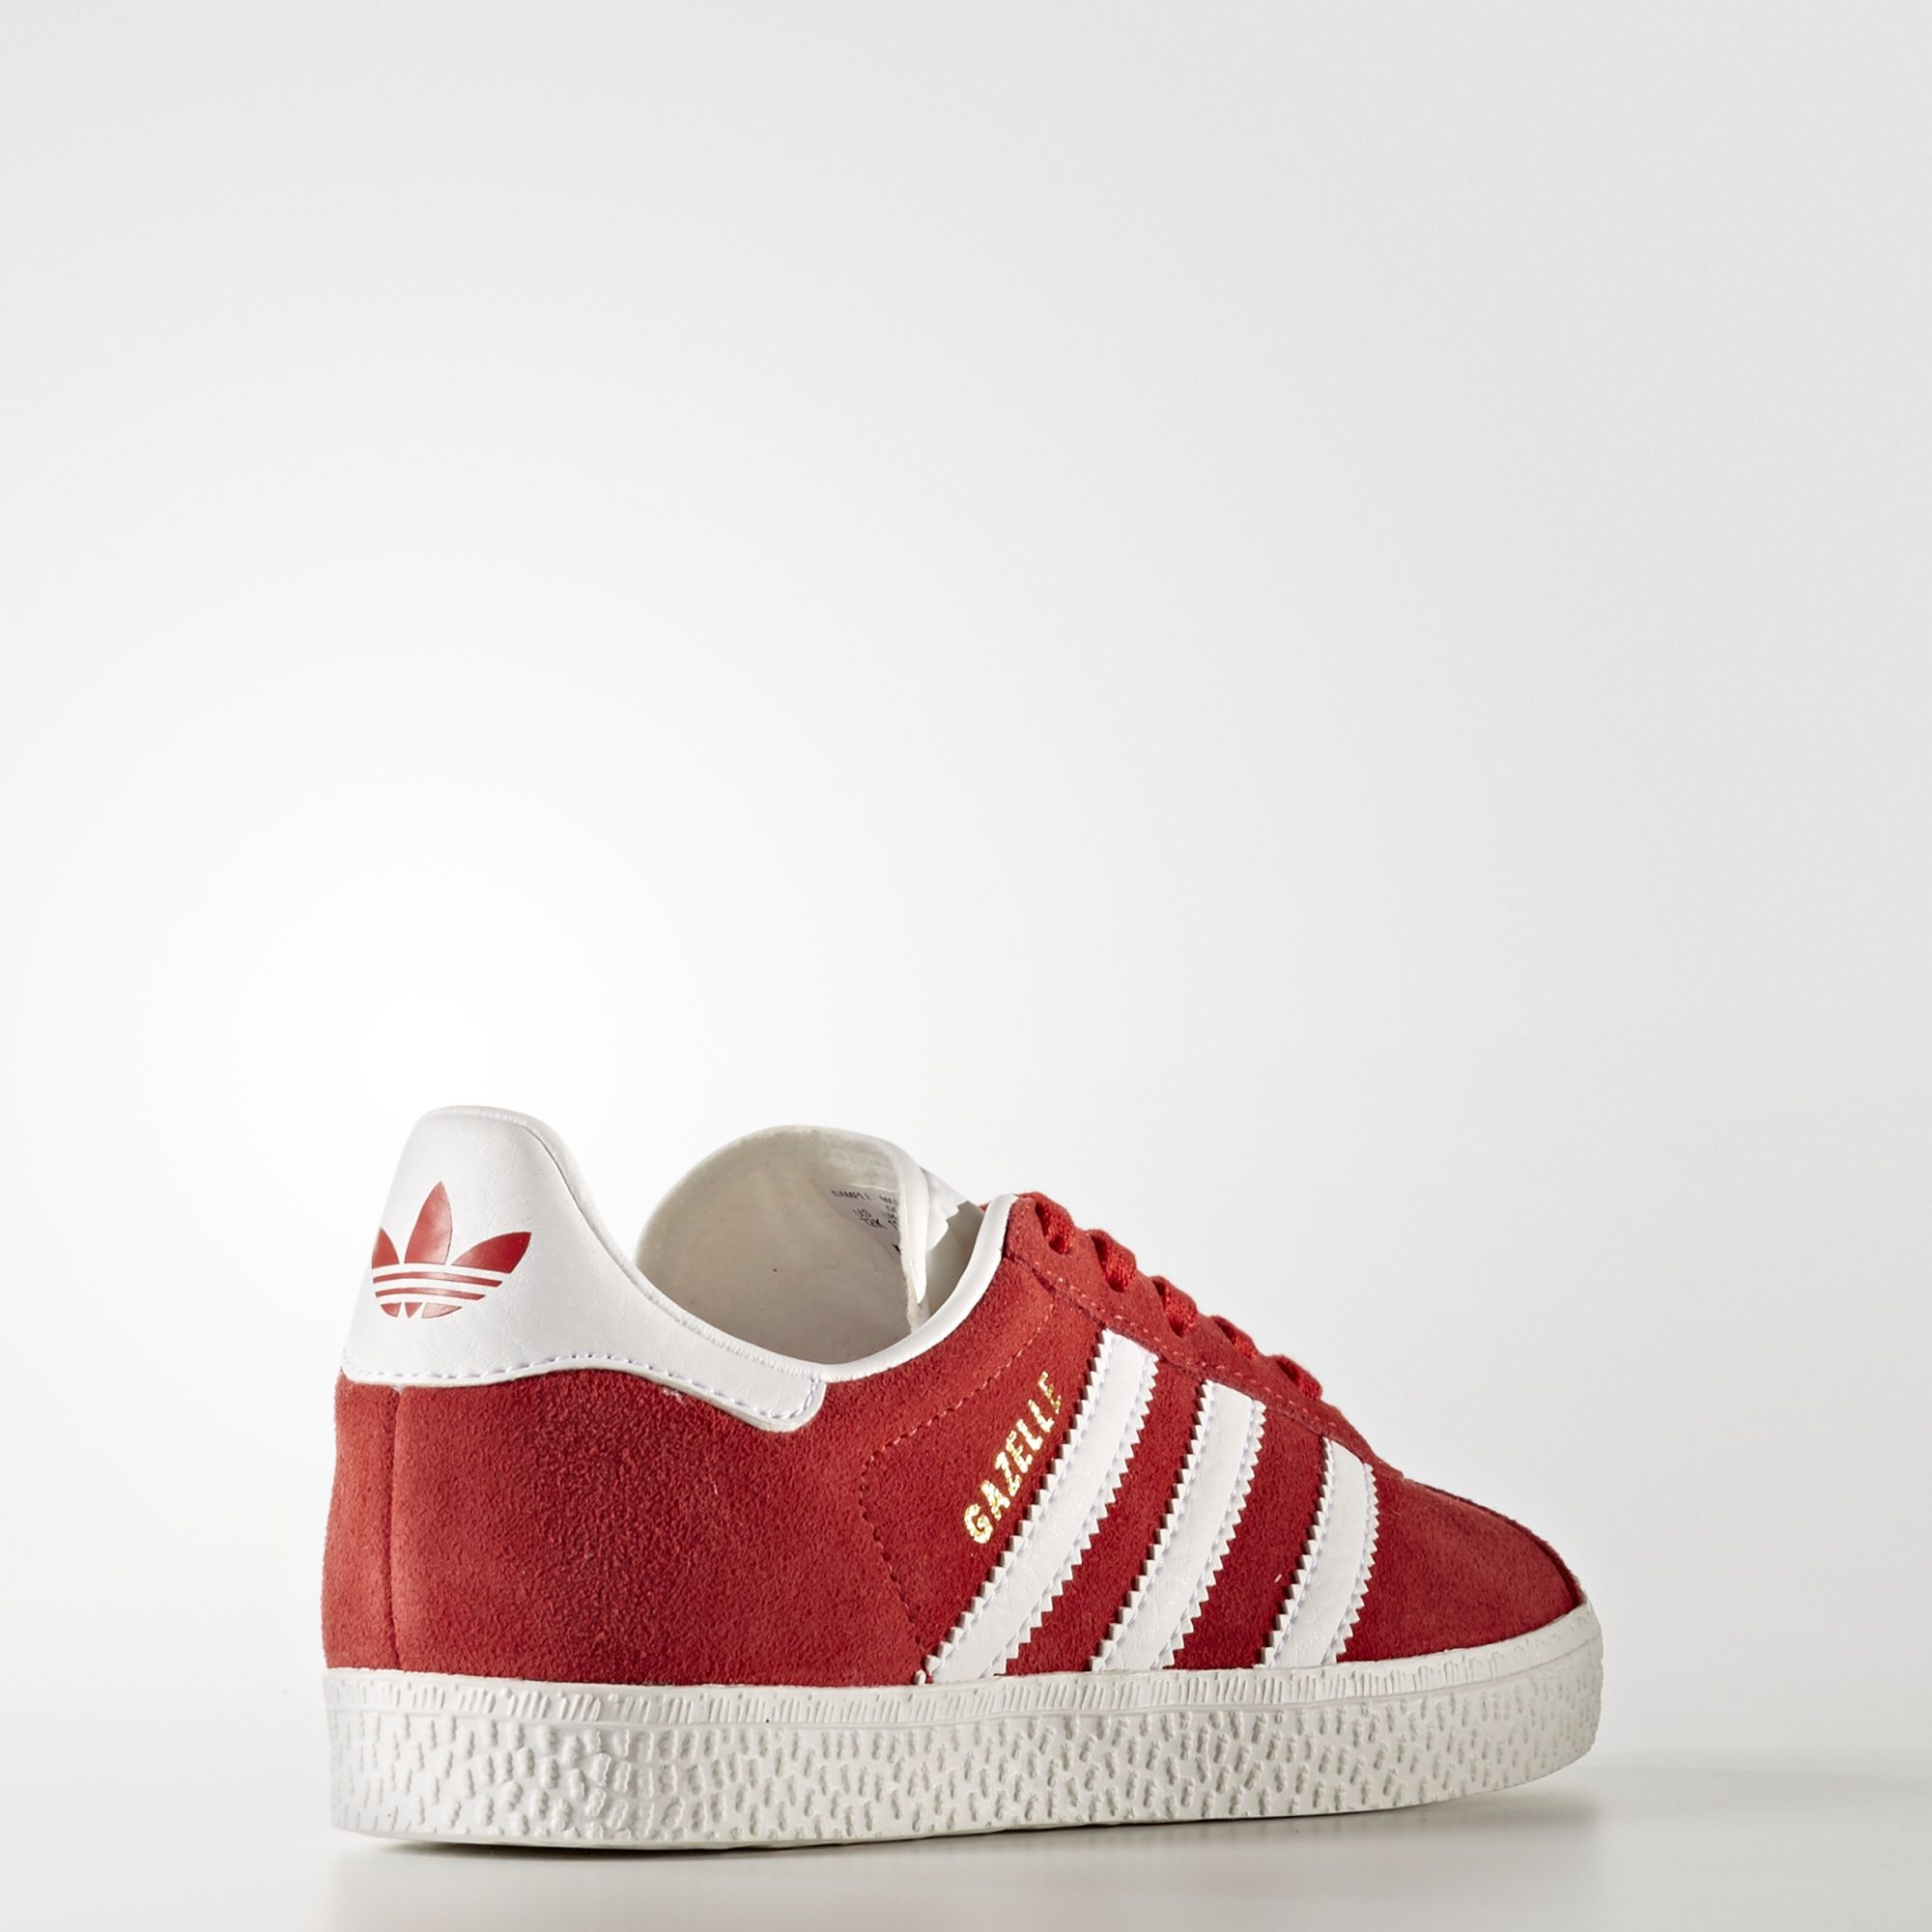 best website 8351f cb6d9 Adidas Gazelle C Bambino Rosso Art. BY9547. By954701  By9547 05 standard ...